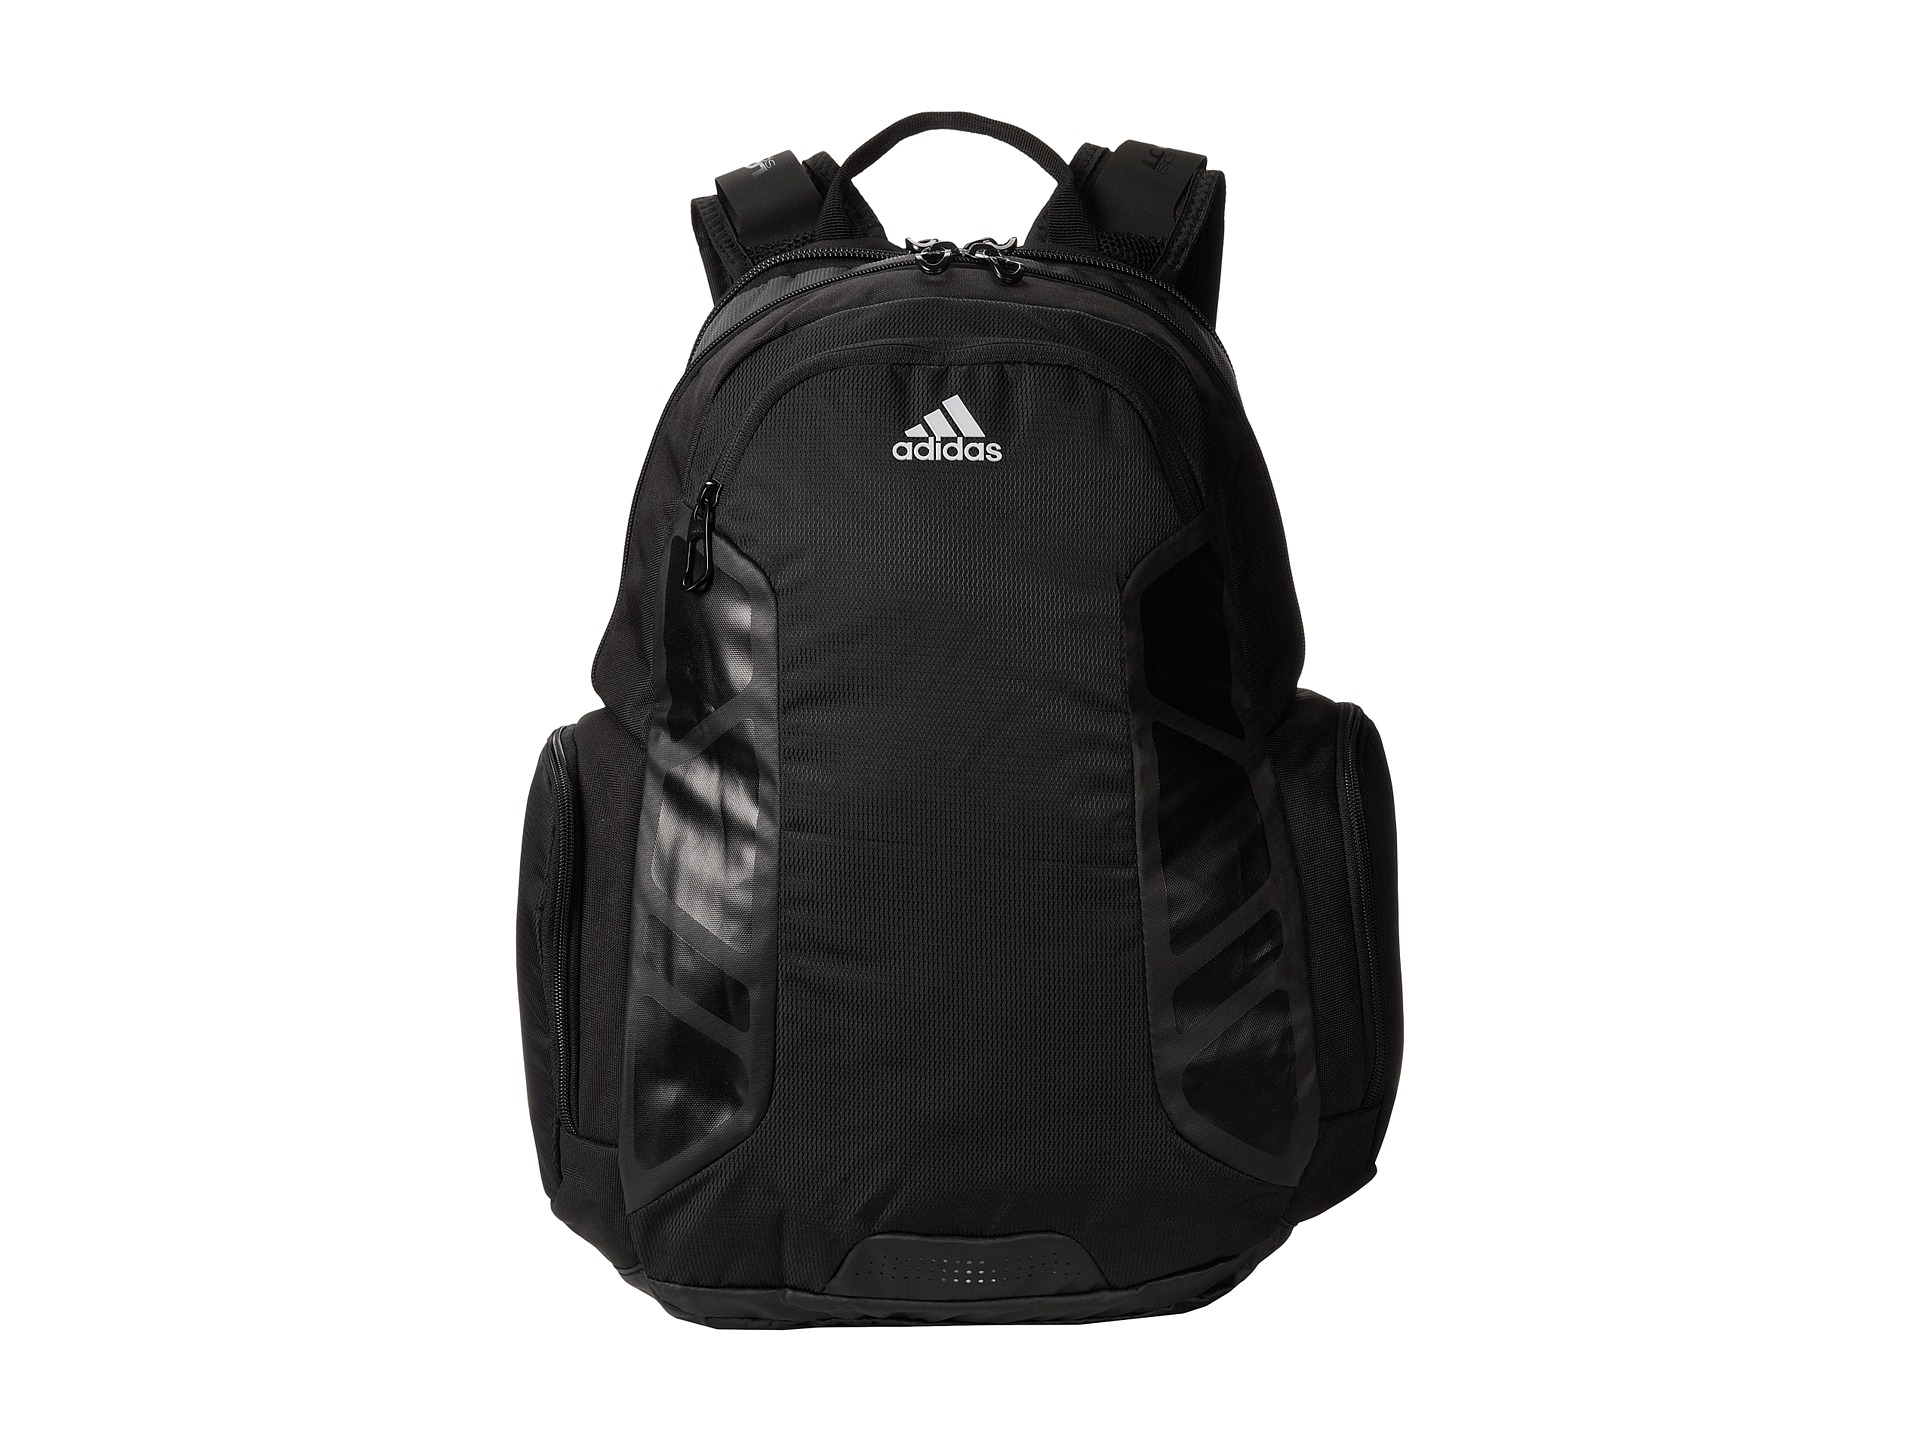 ... Adidas 3d Mesh Backpack Maroon reputable site fe473 8b6b3  zappos adidas  backpack newest c8bf3 e84e4 ... 407731c5c9